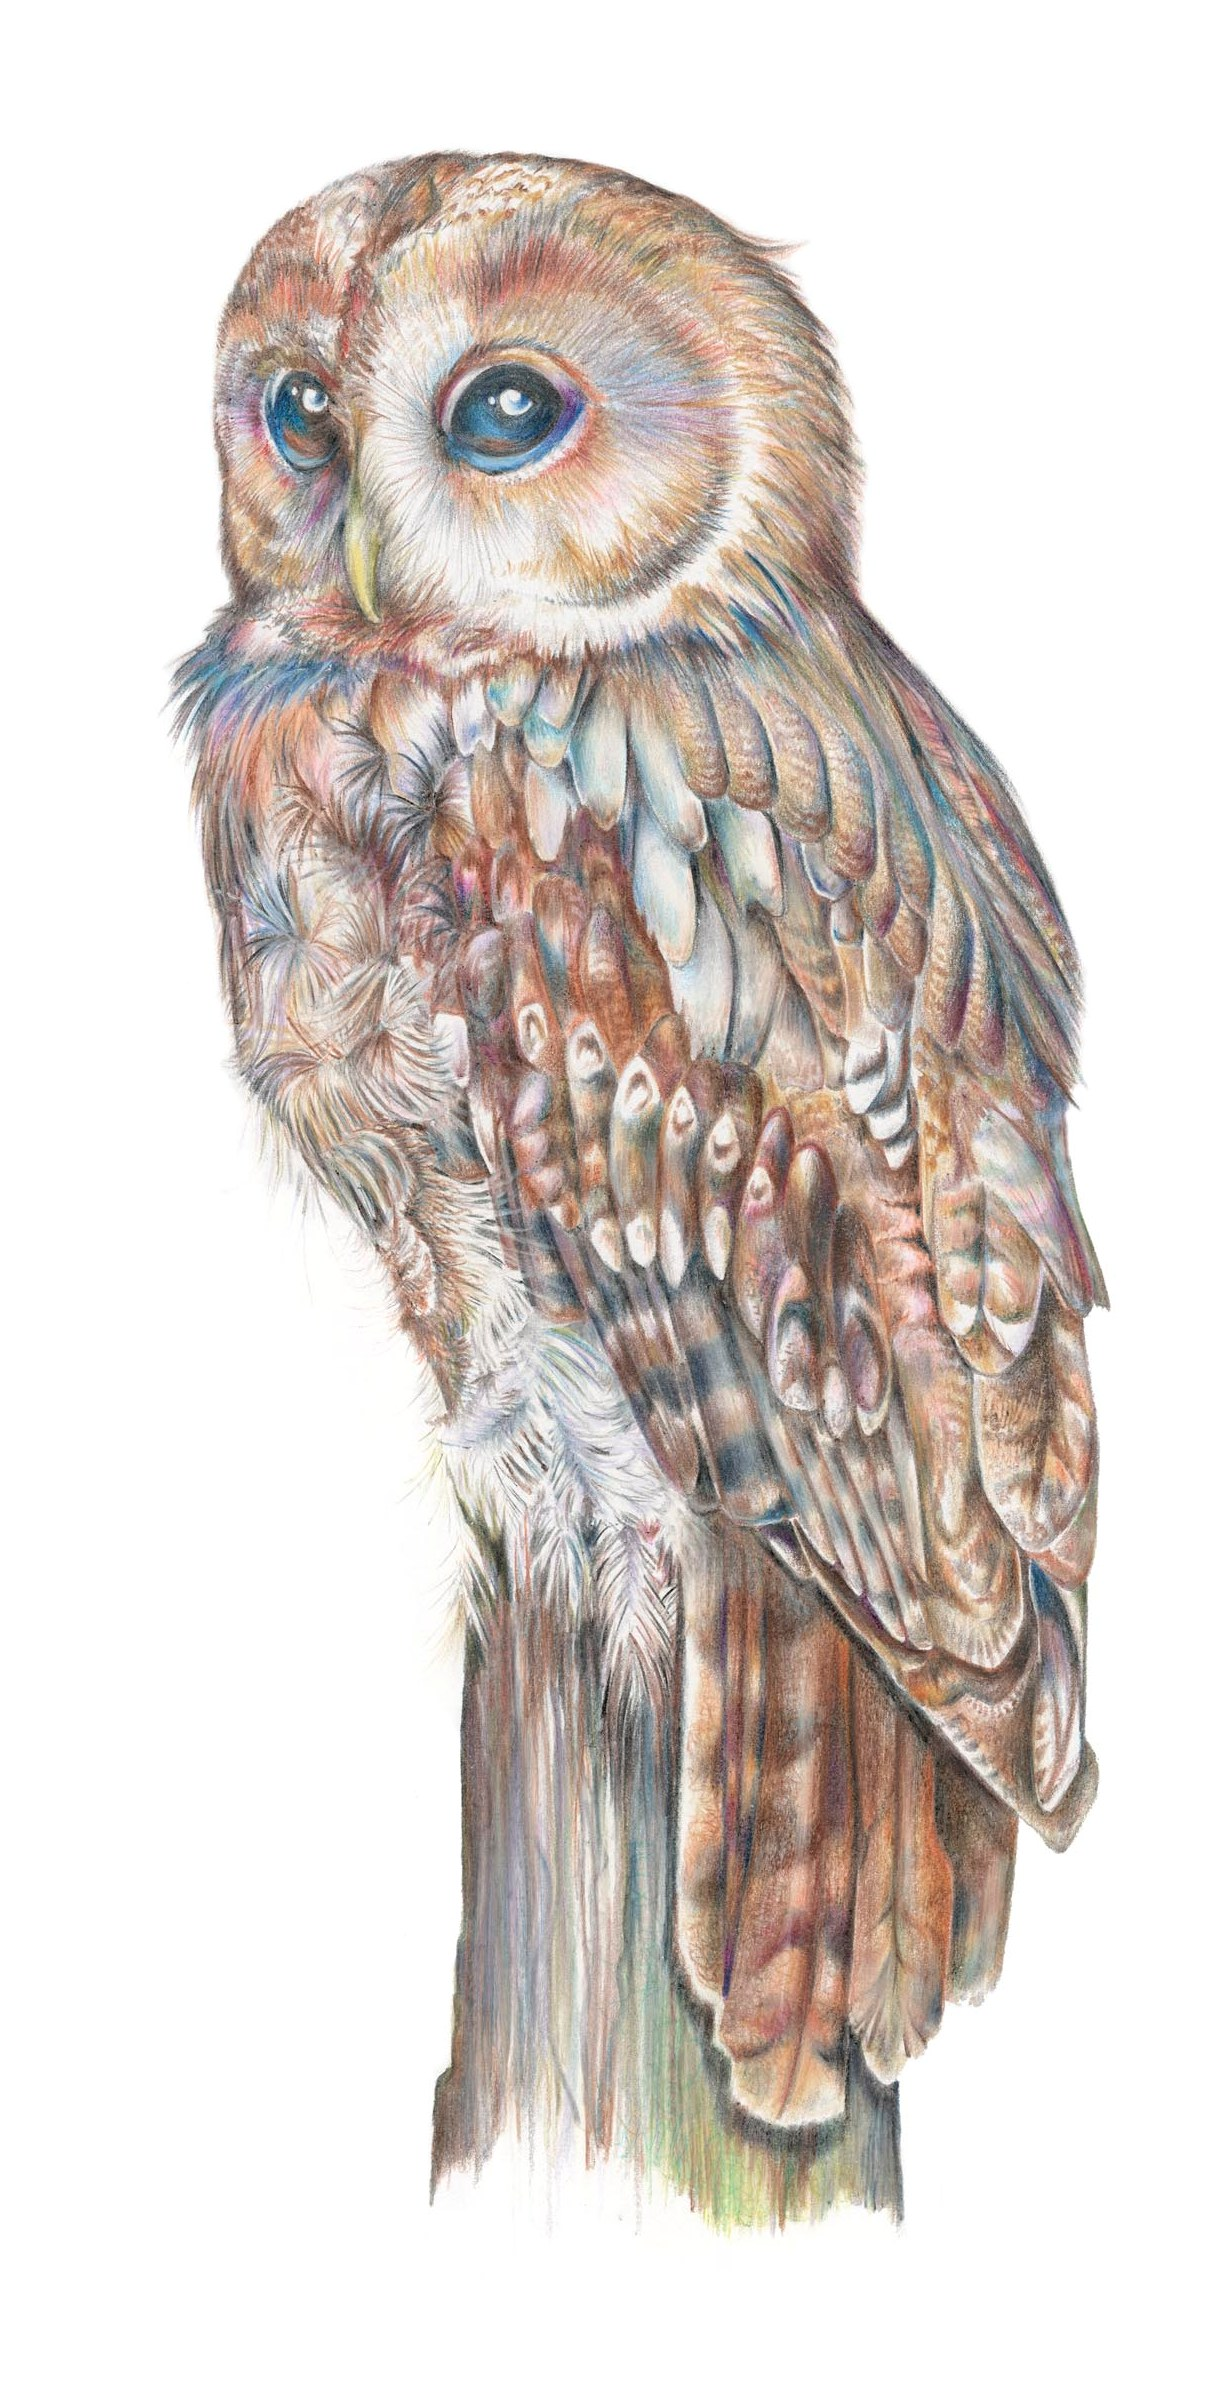 Tawny Owl illustration by botanical illustration Charlotte Argyrou. Limited edition Giclee artprint.